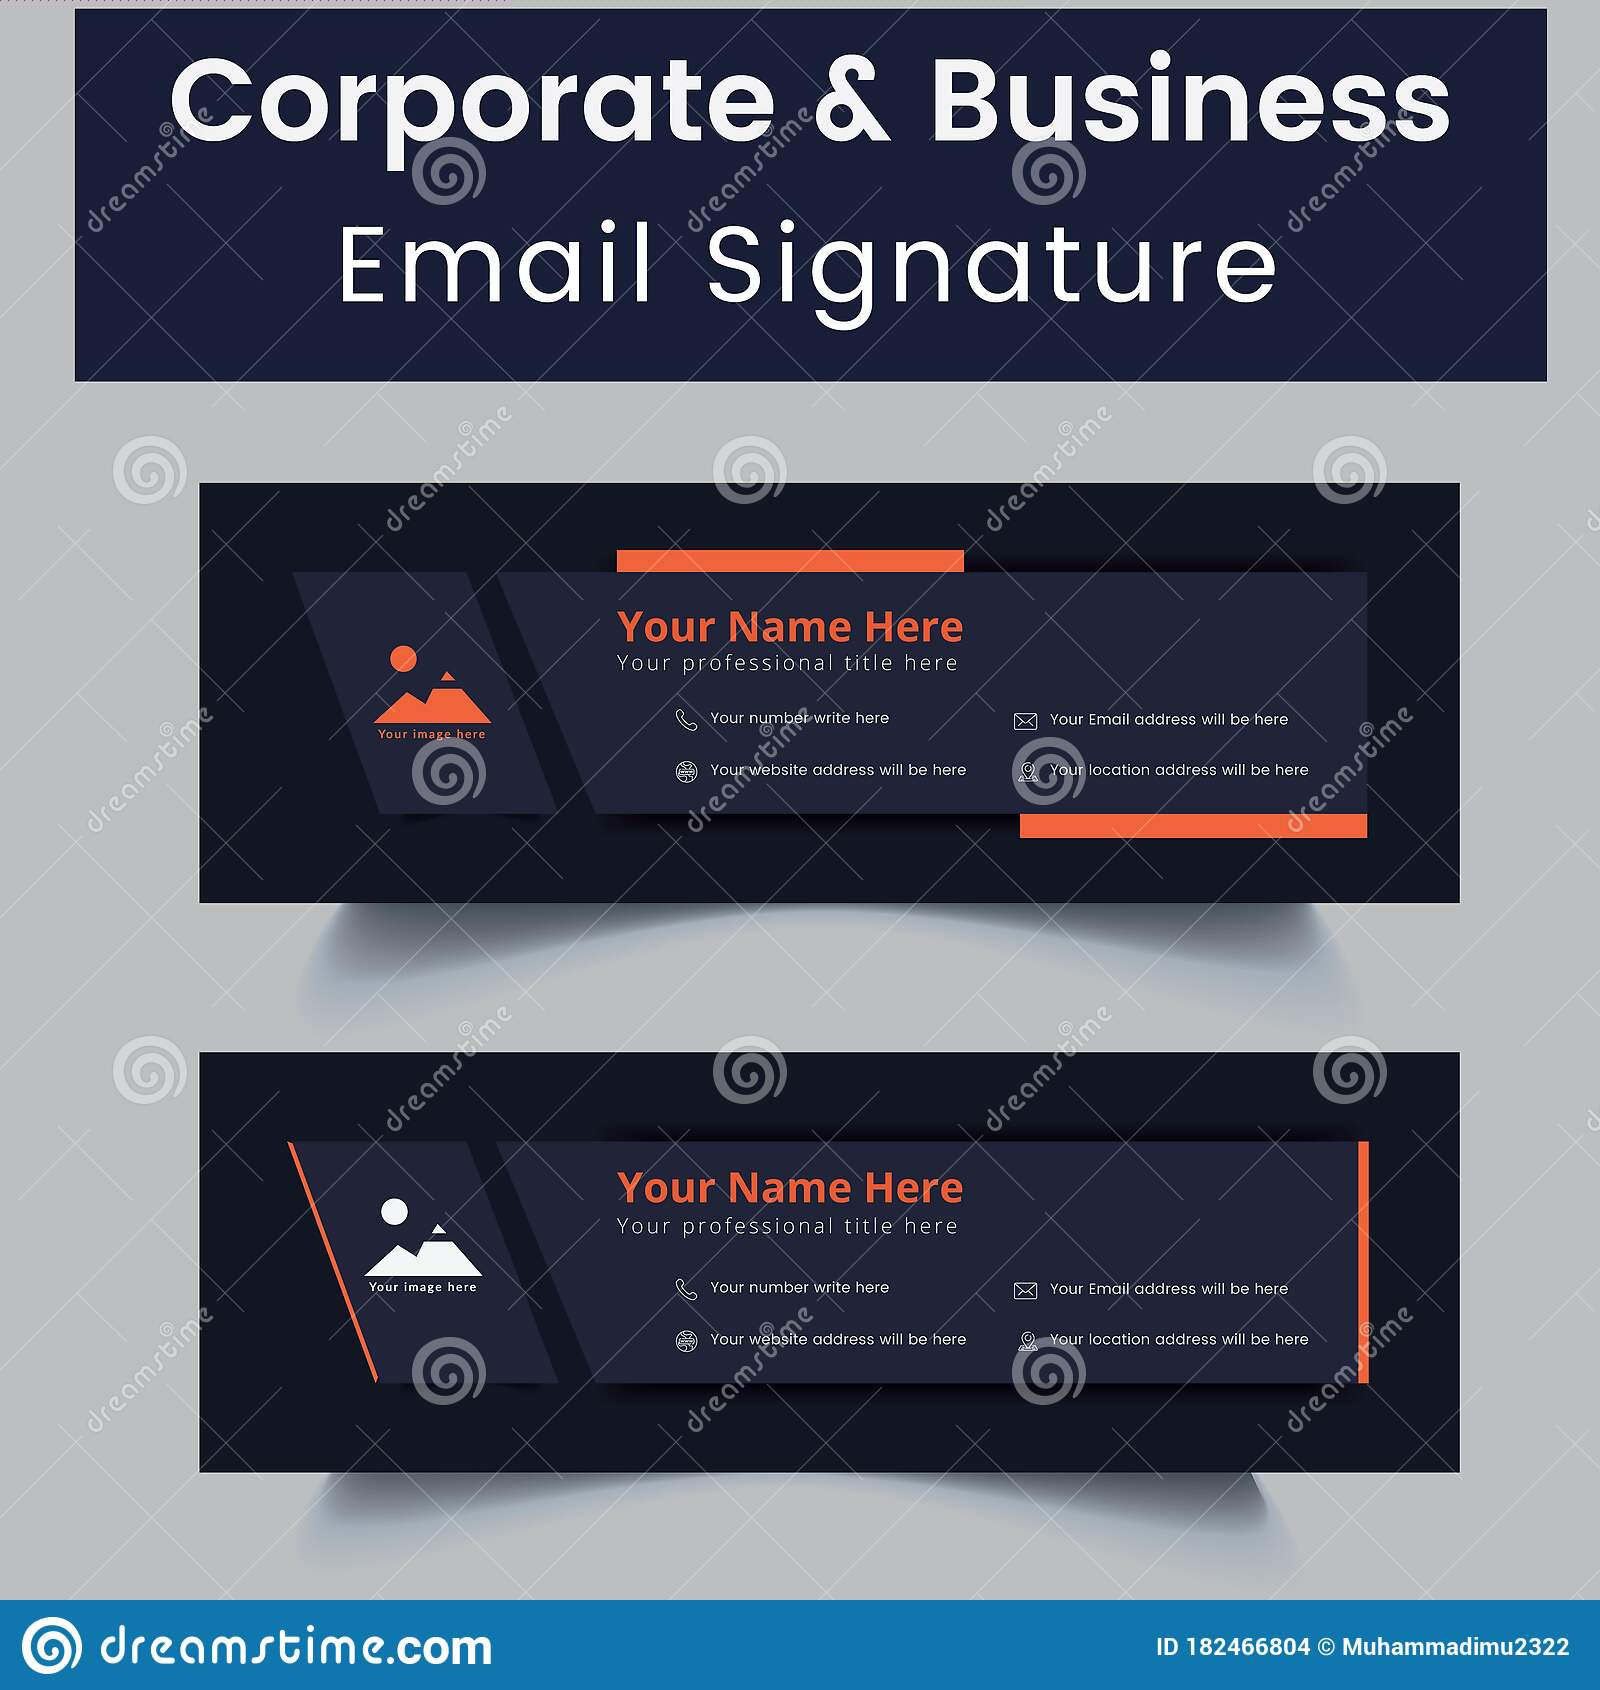 Professional Corporate Email Email Signature Template